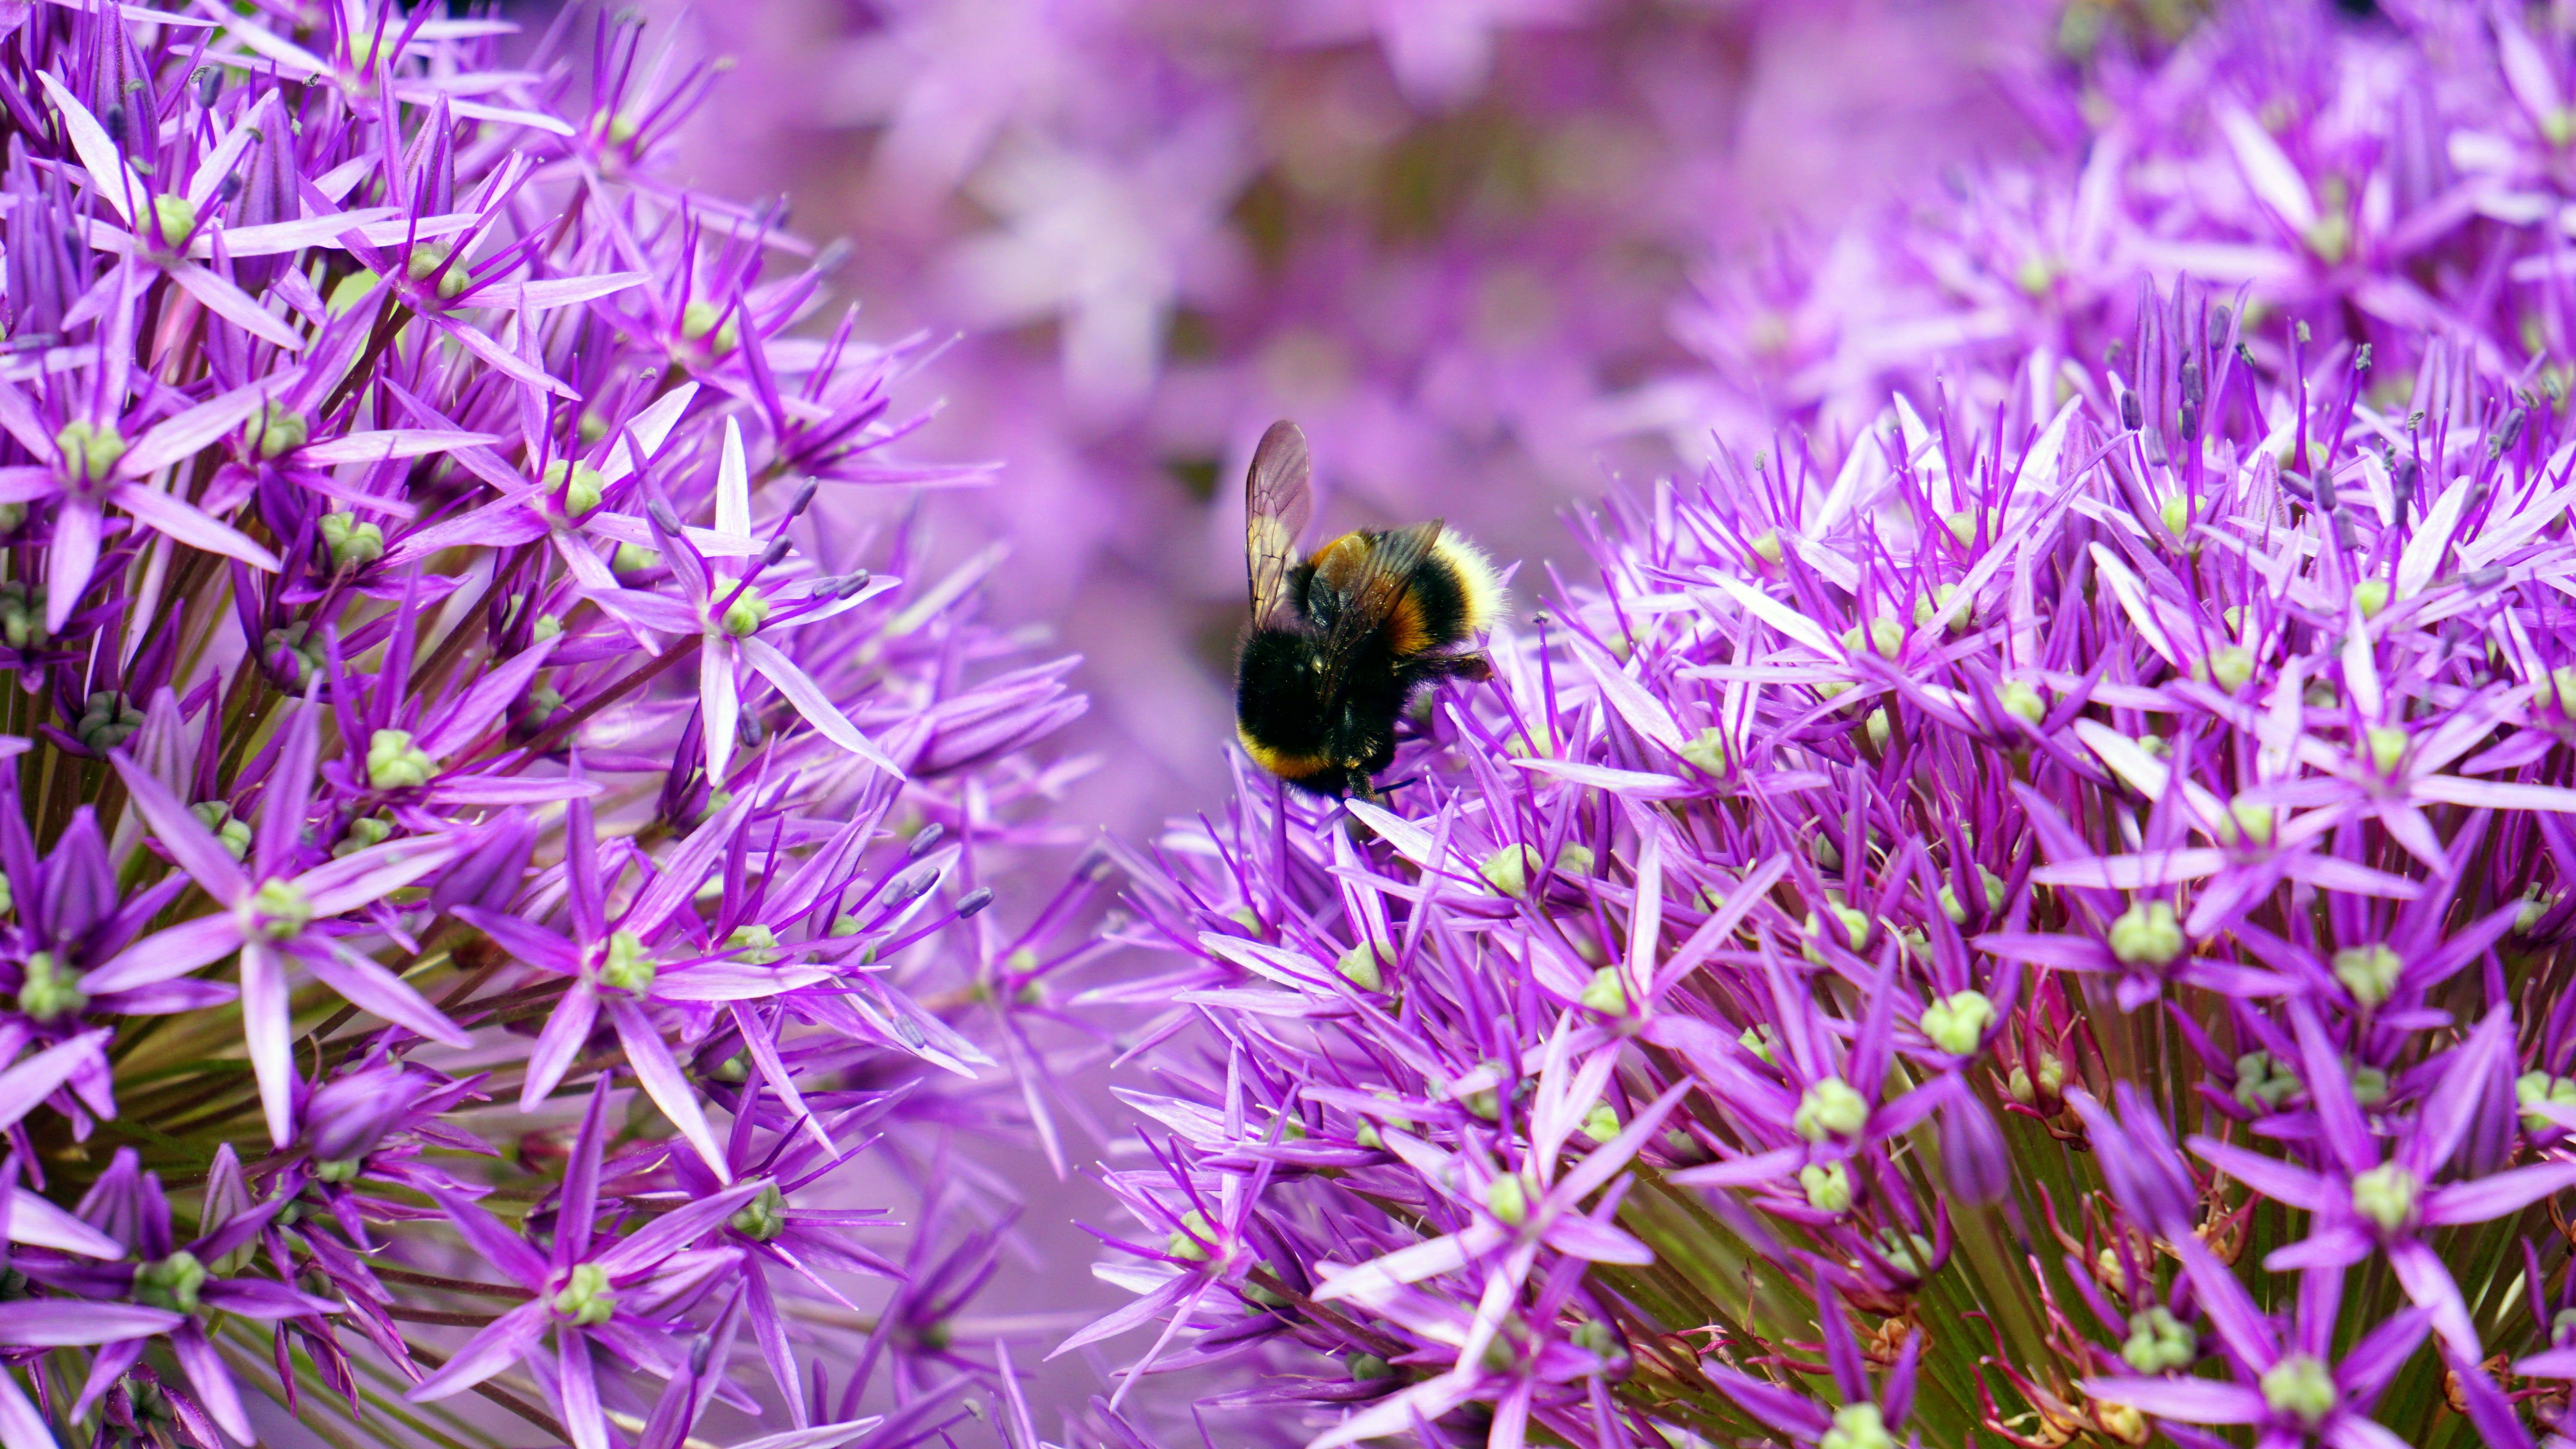 Black and Yellow Bee on Purple and White Flower during Day Time